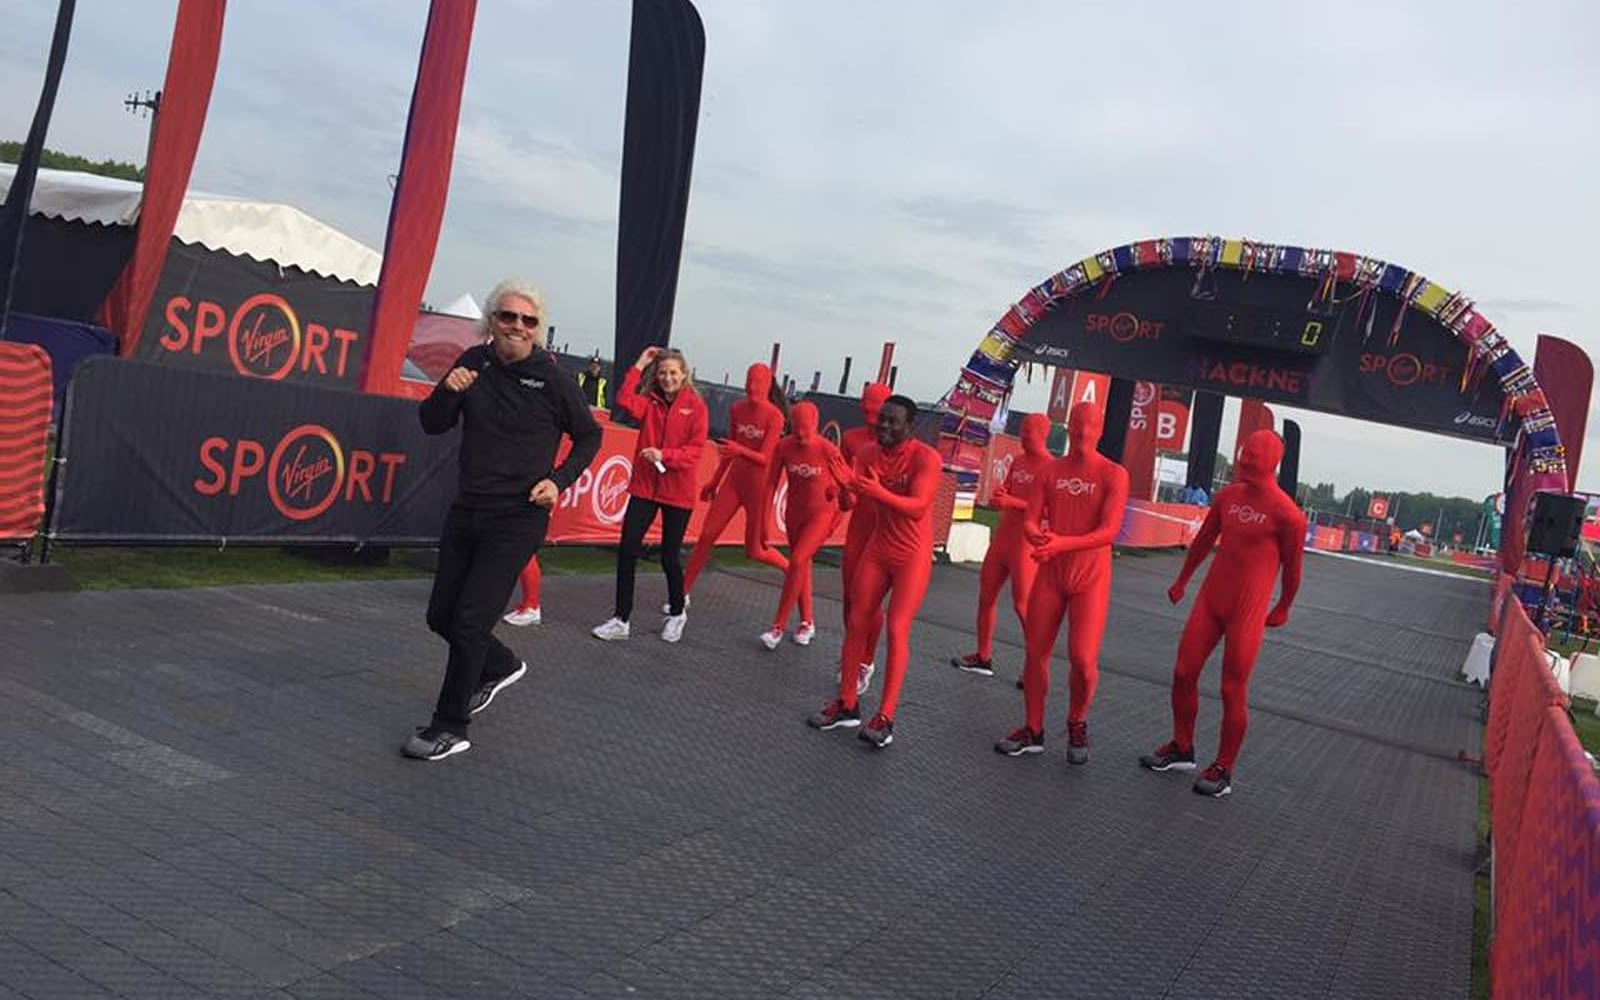 Richard Branson, dressed in black, leads a group of runners dressed in red across the finish line at a Virgin Sport Hackney race